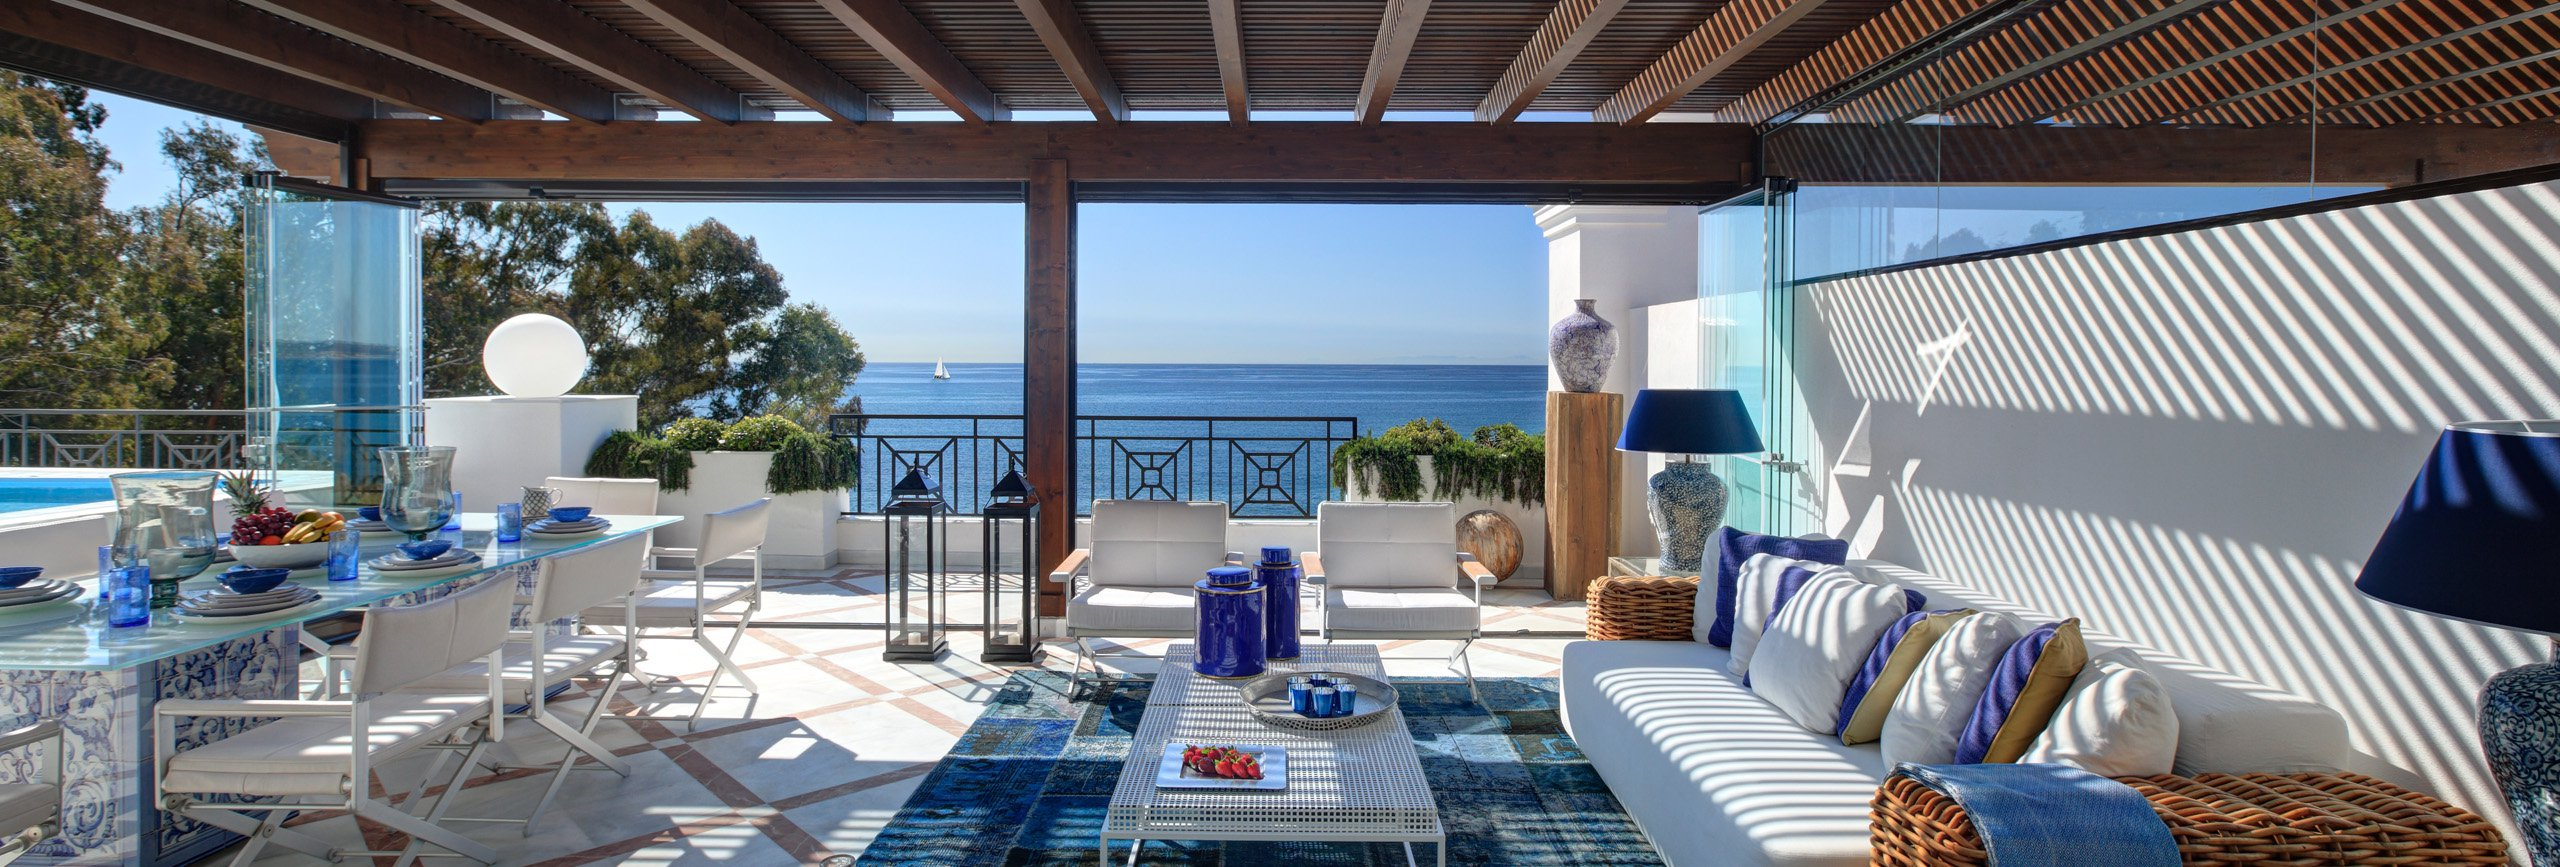 Photo of: 5 Bedroom Duplex Penthouse - Doncella Beach | Deluxe Residential complex in the town of Estepona (Costa del Sol), beachfront apartments, penthouses and duplex from 1 to 5 bedrooms.